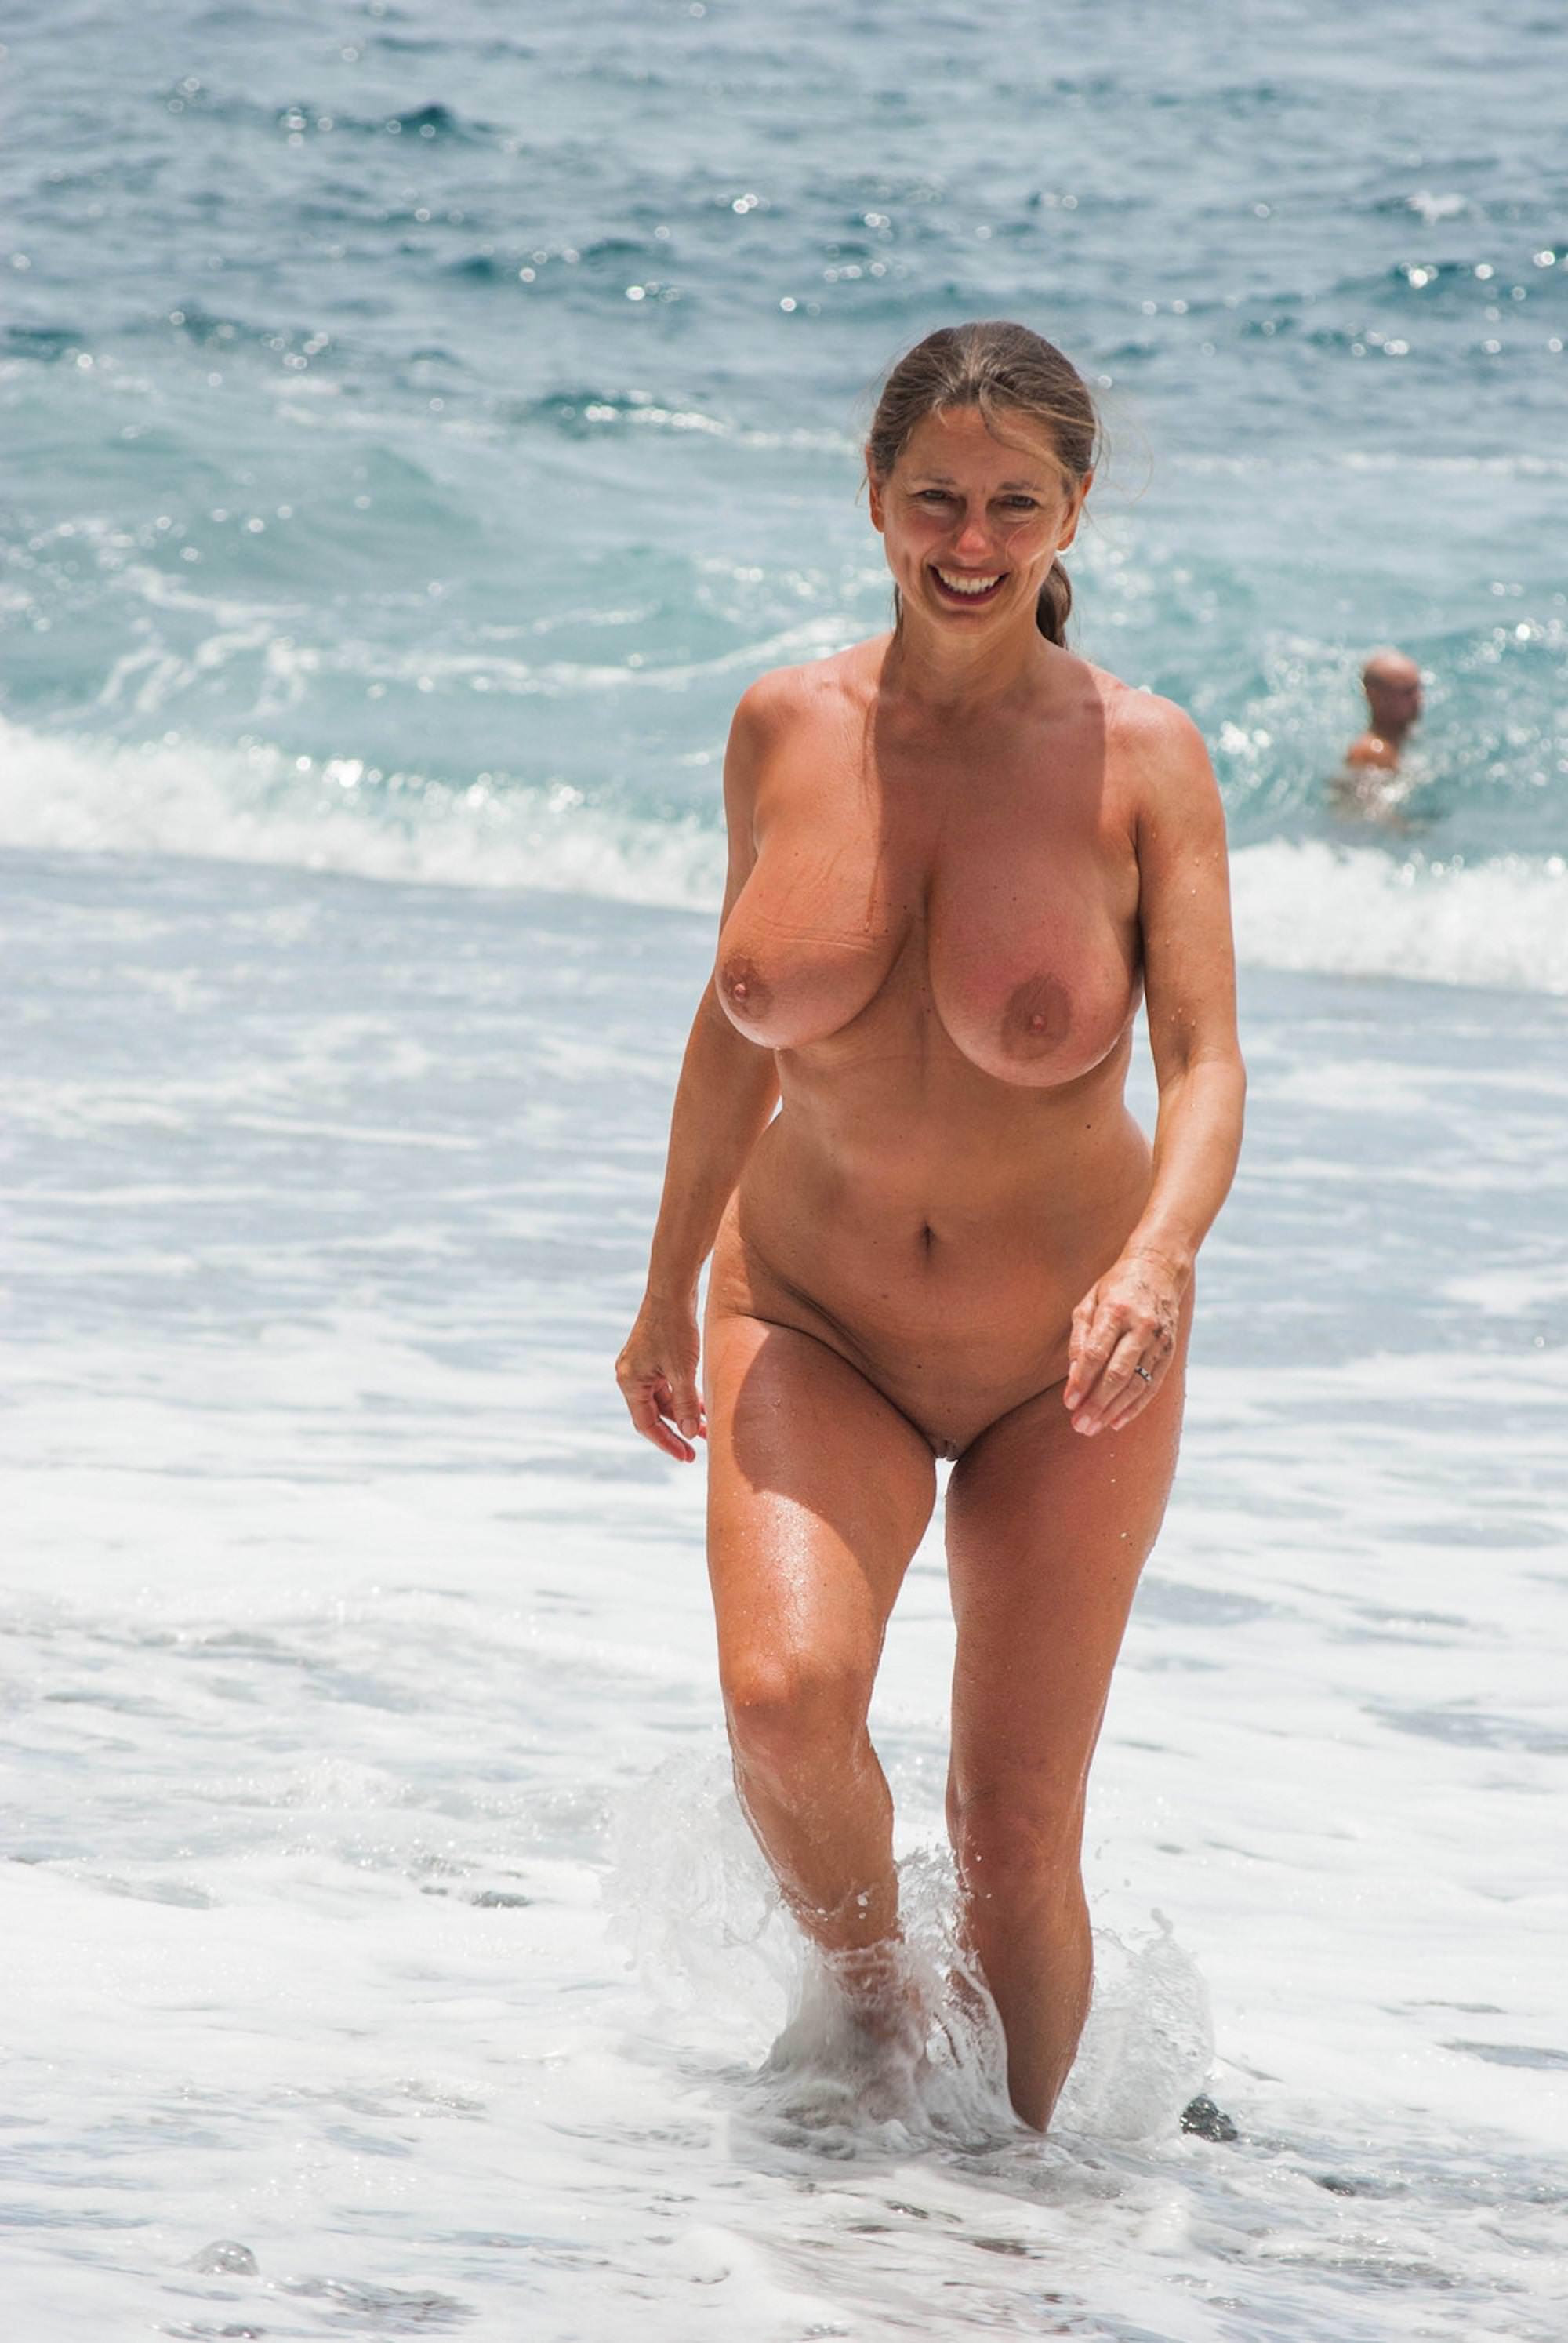 On pornhub nude the milfs public beach